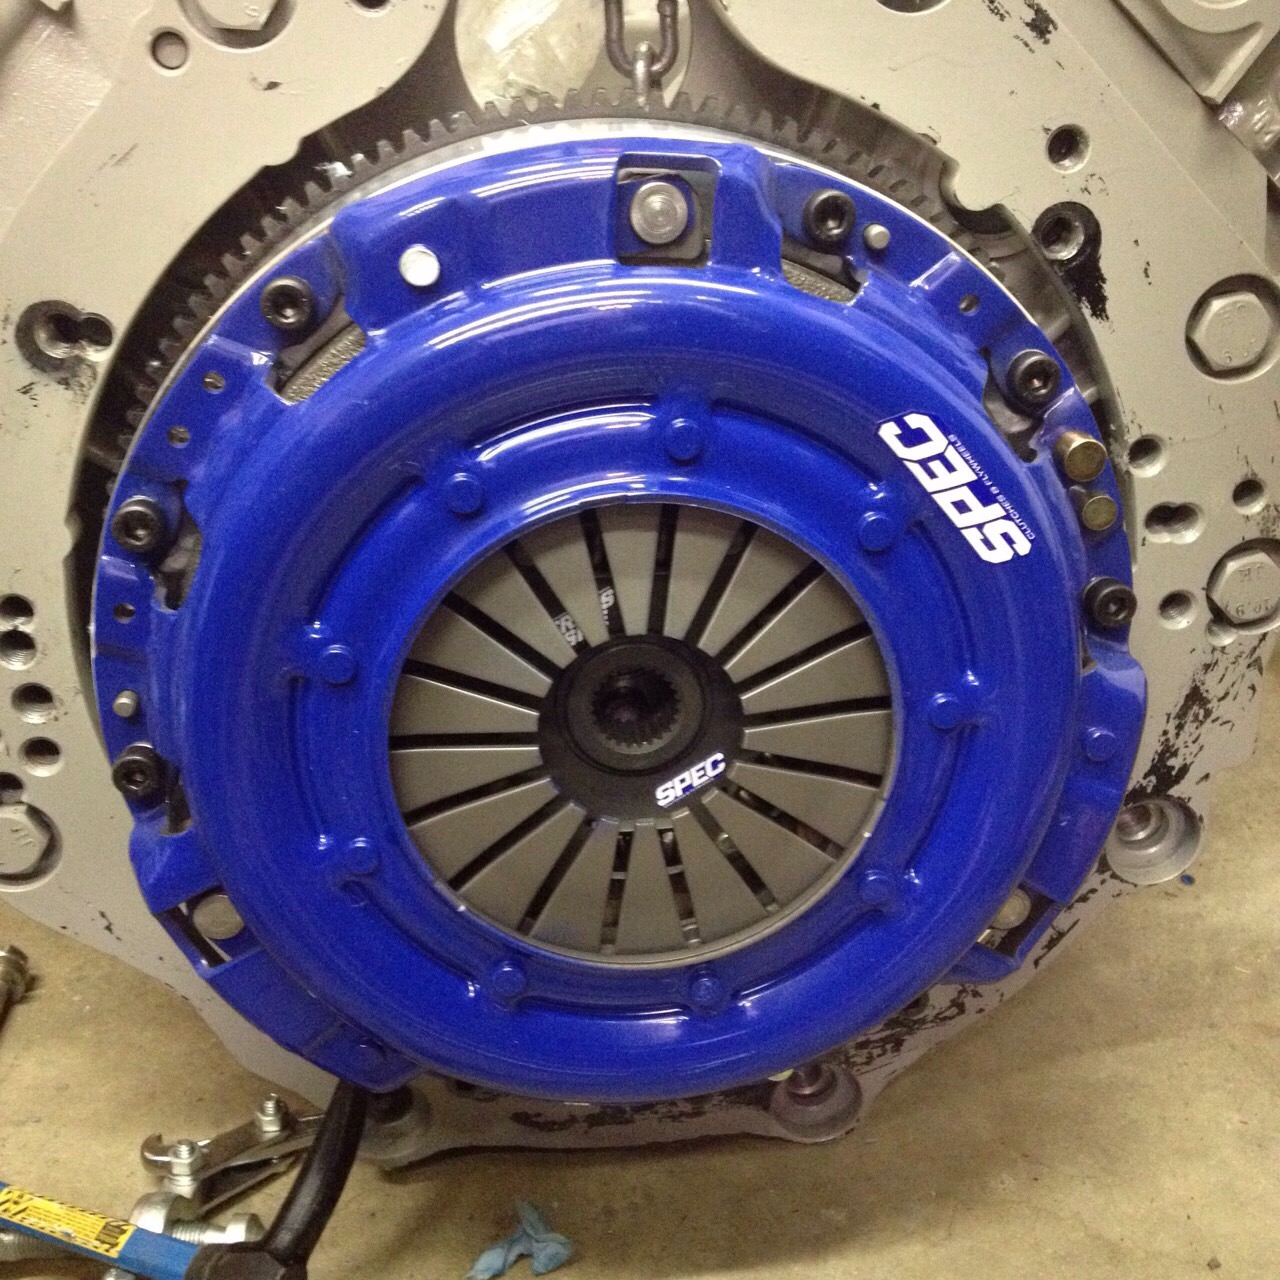 spec 350z clutch and vk56 conversion flywheel